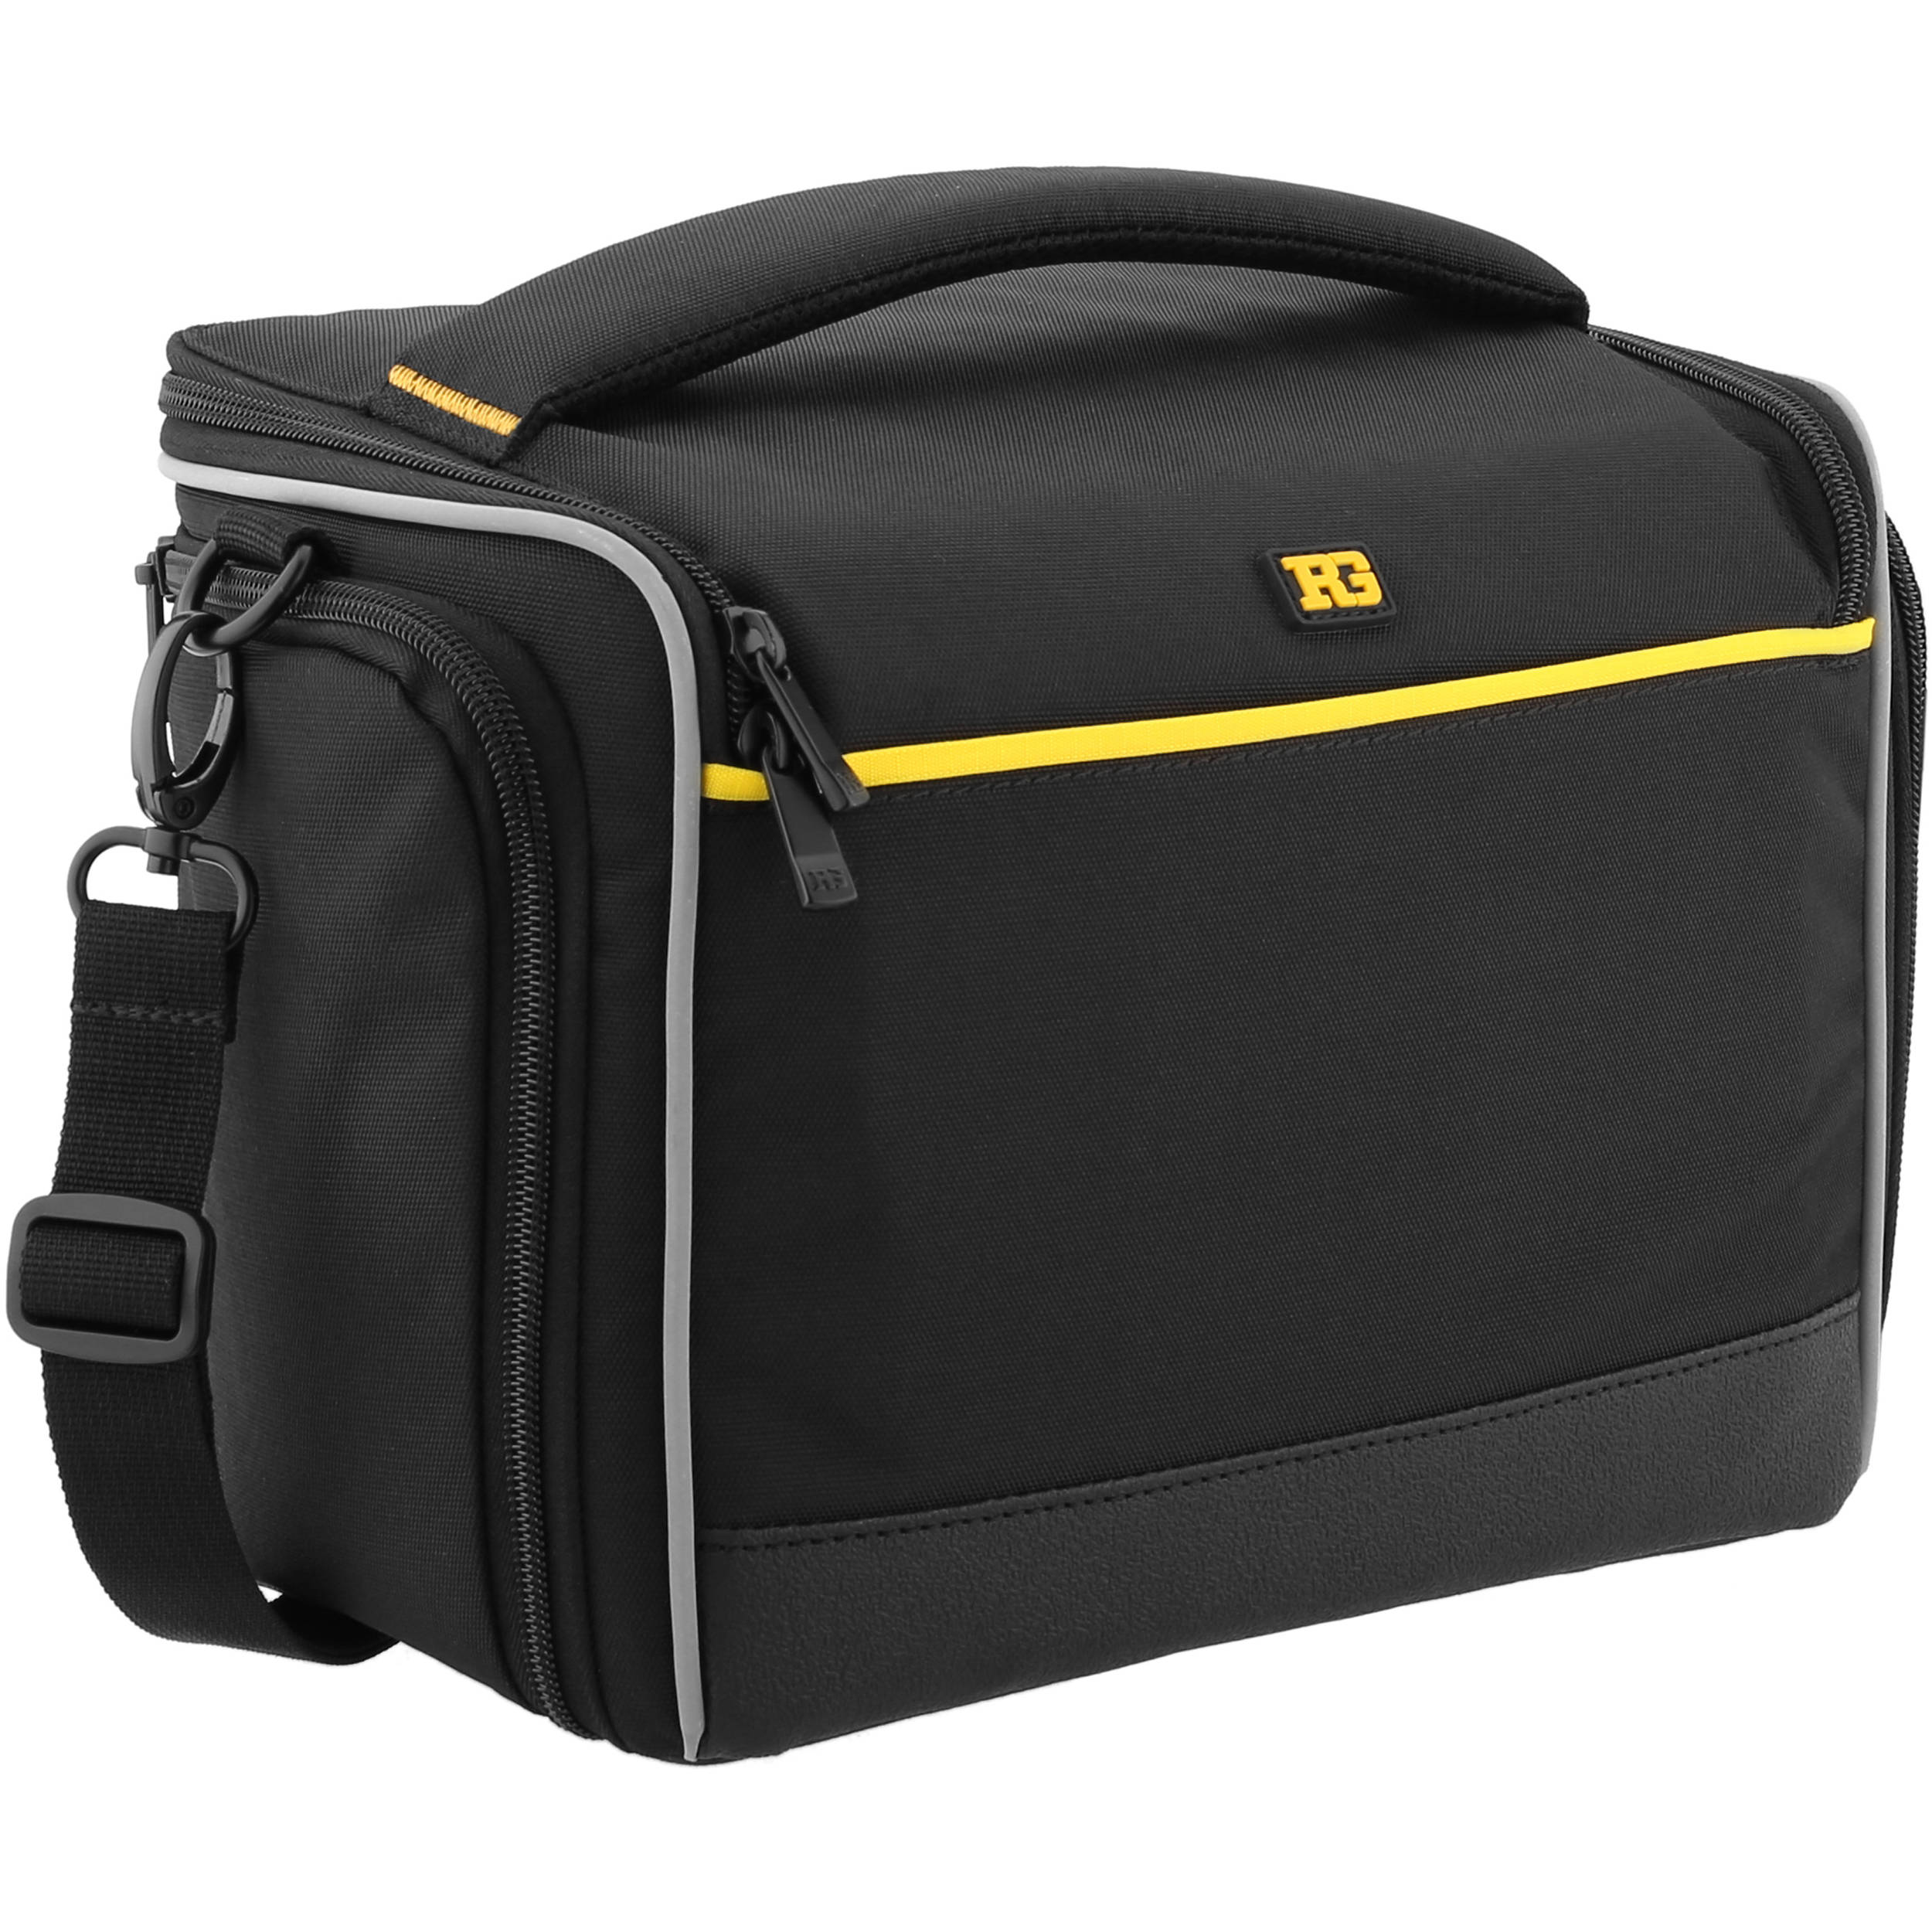 e0f39970df1c Ruggard Onyx 45 Camera Camcorder Shoulder Bag